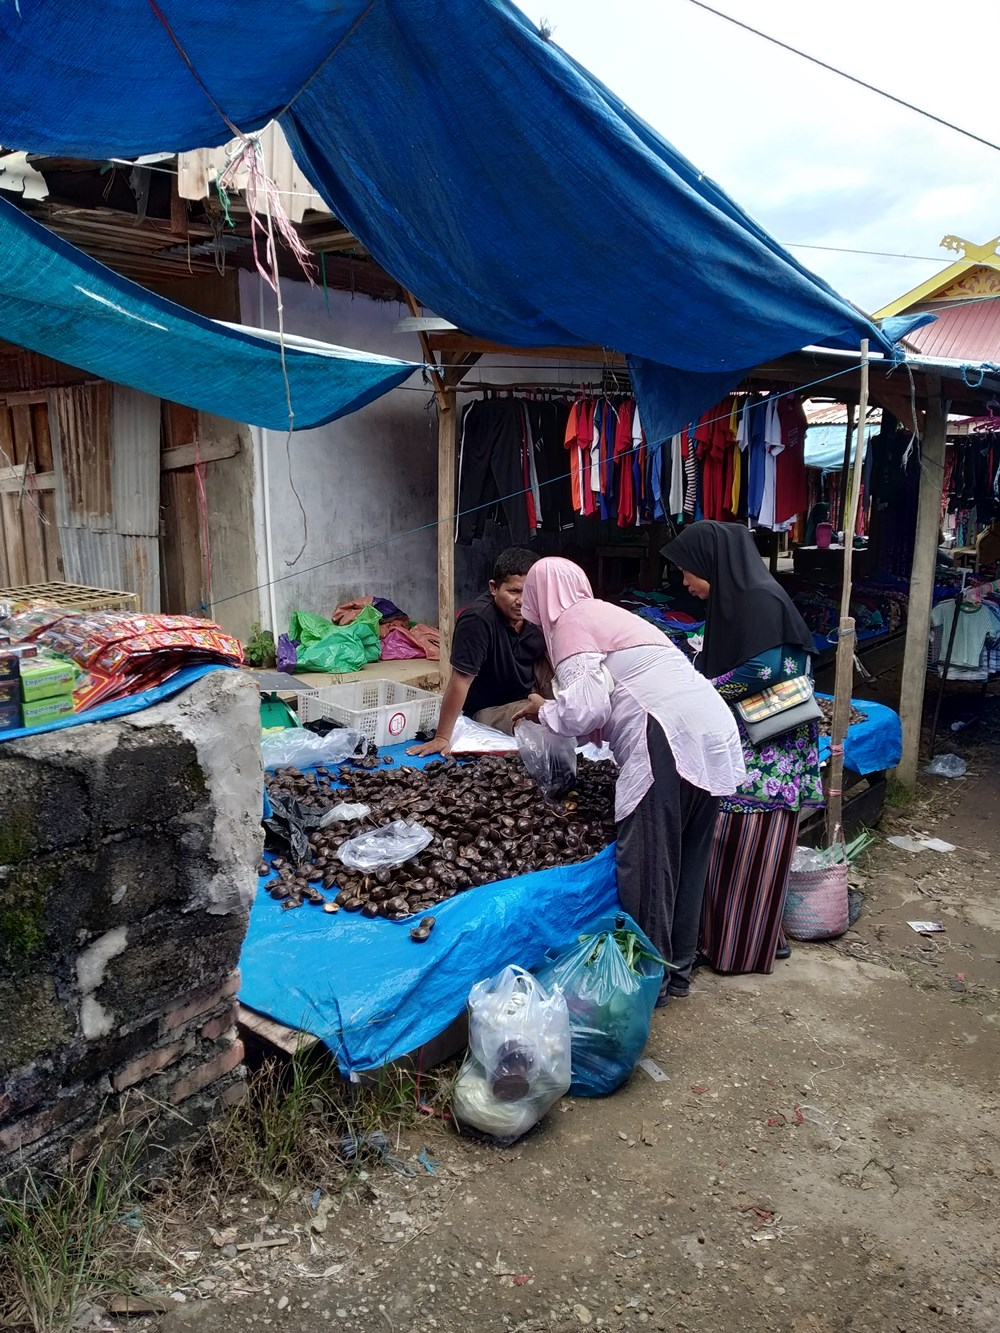 Foto Gratis Pasar Free Stock Photo Traditional market in Indonesia Asia 030 penjual jengkol